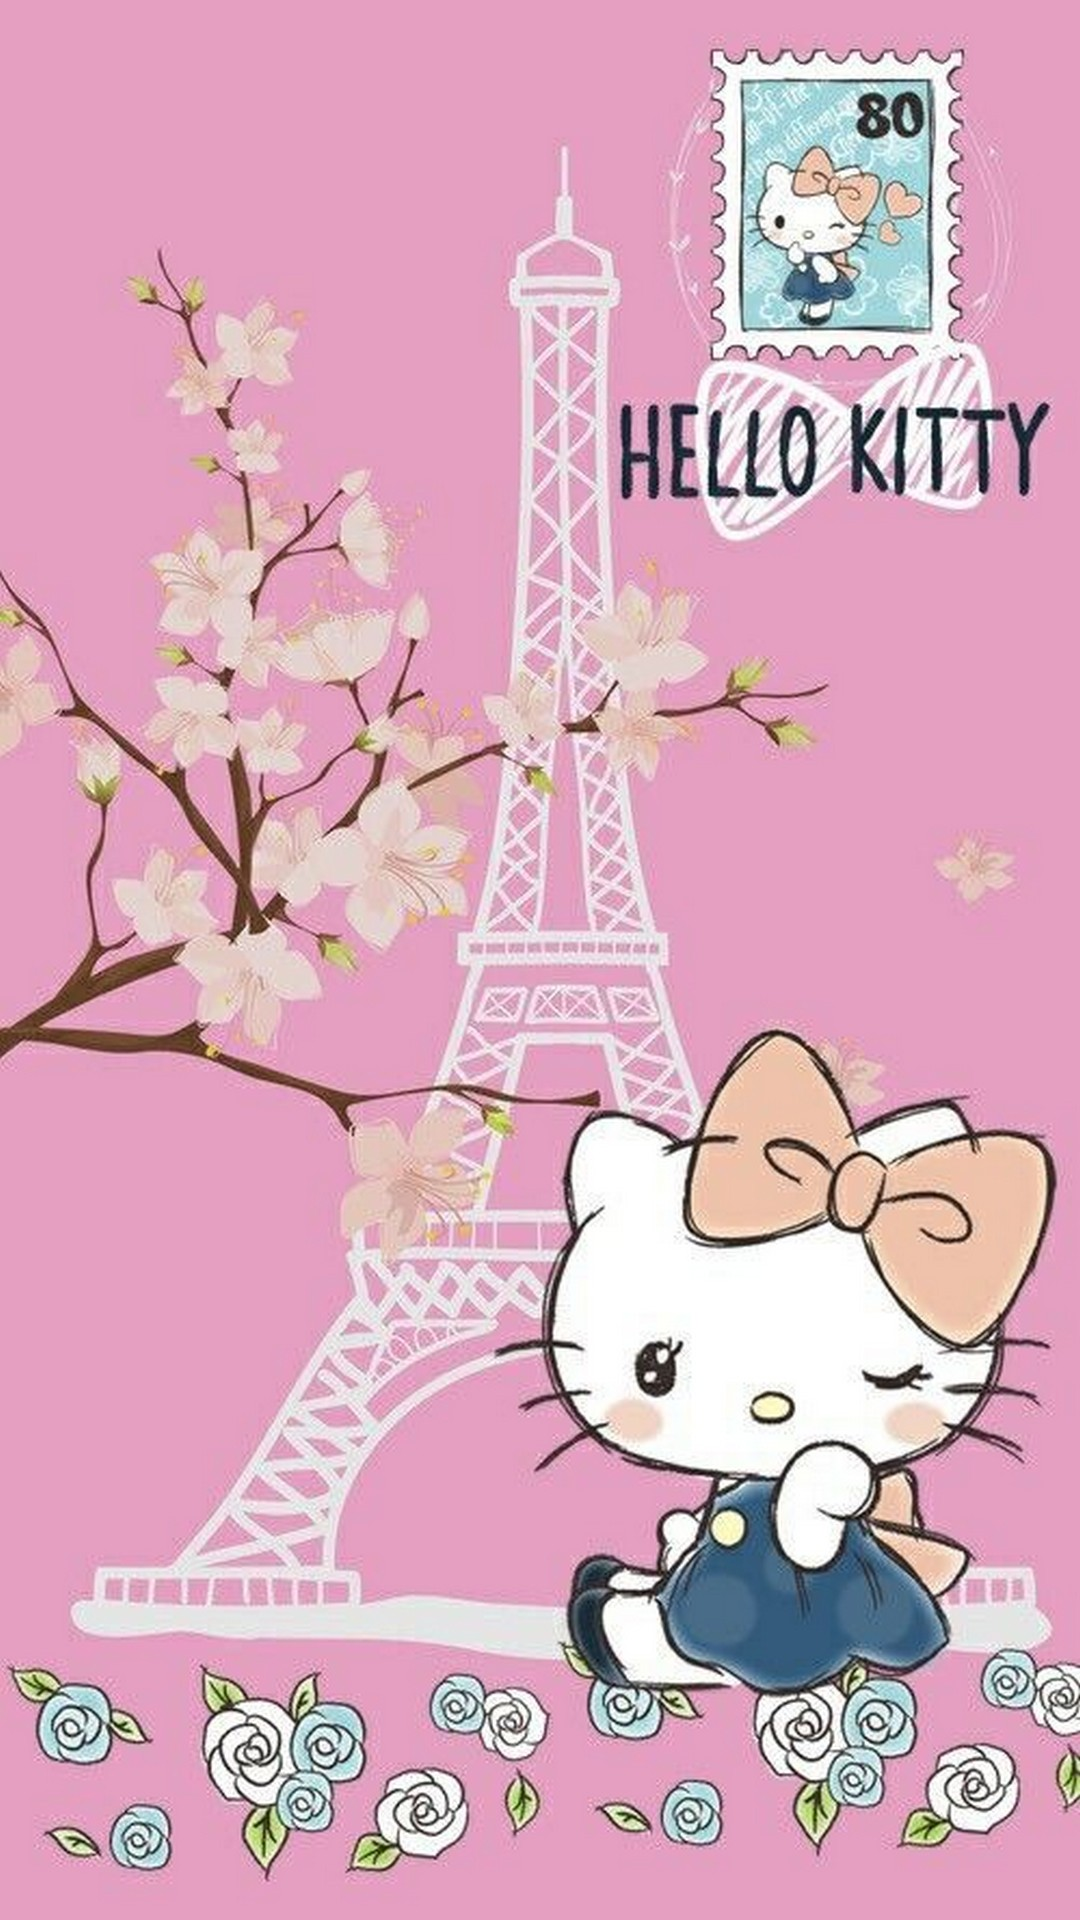 Wallpaper Of Hello Kitty Posted By Zoey Mercado